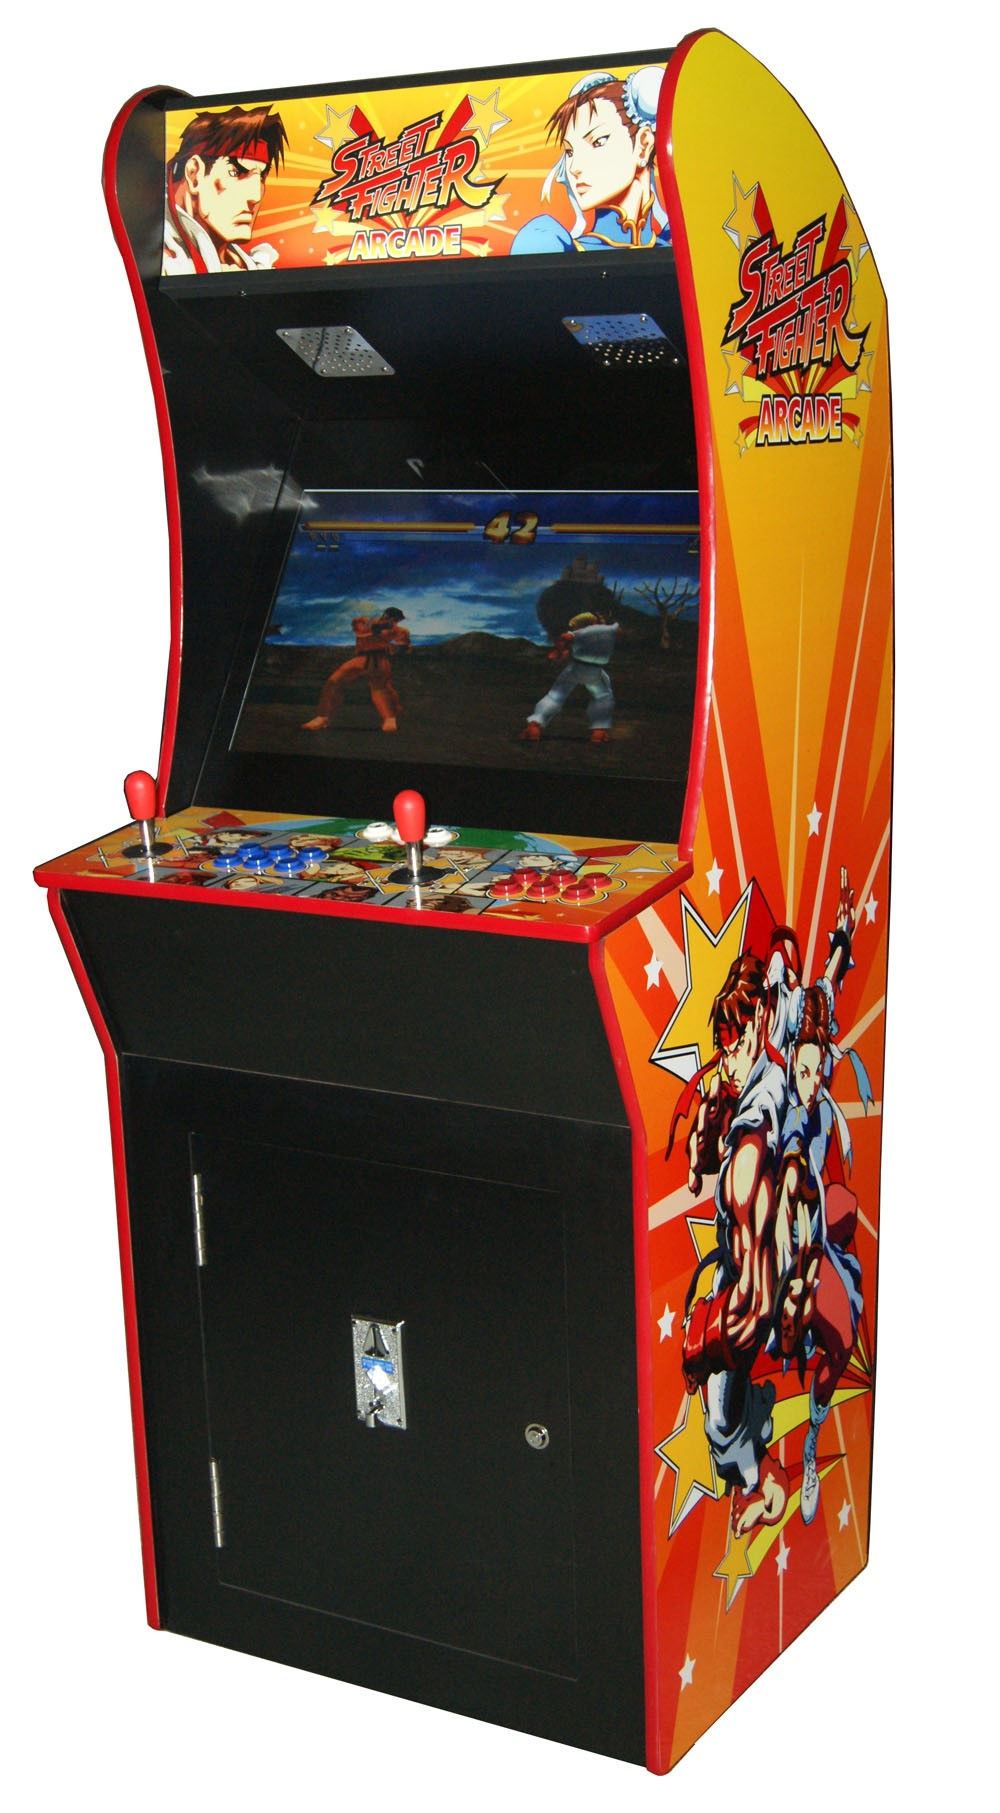 arcade rewind 2100 in 1 upright arcade machine street fighter. Black Bedroom Furniture Sets. Home Design Ideas